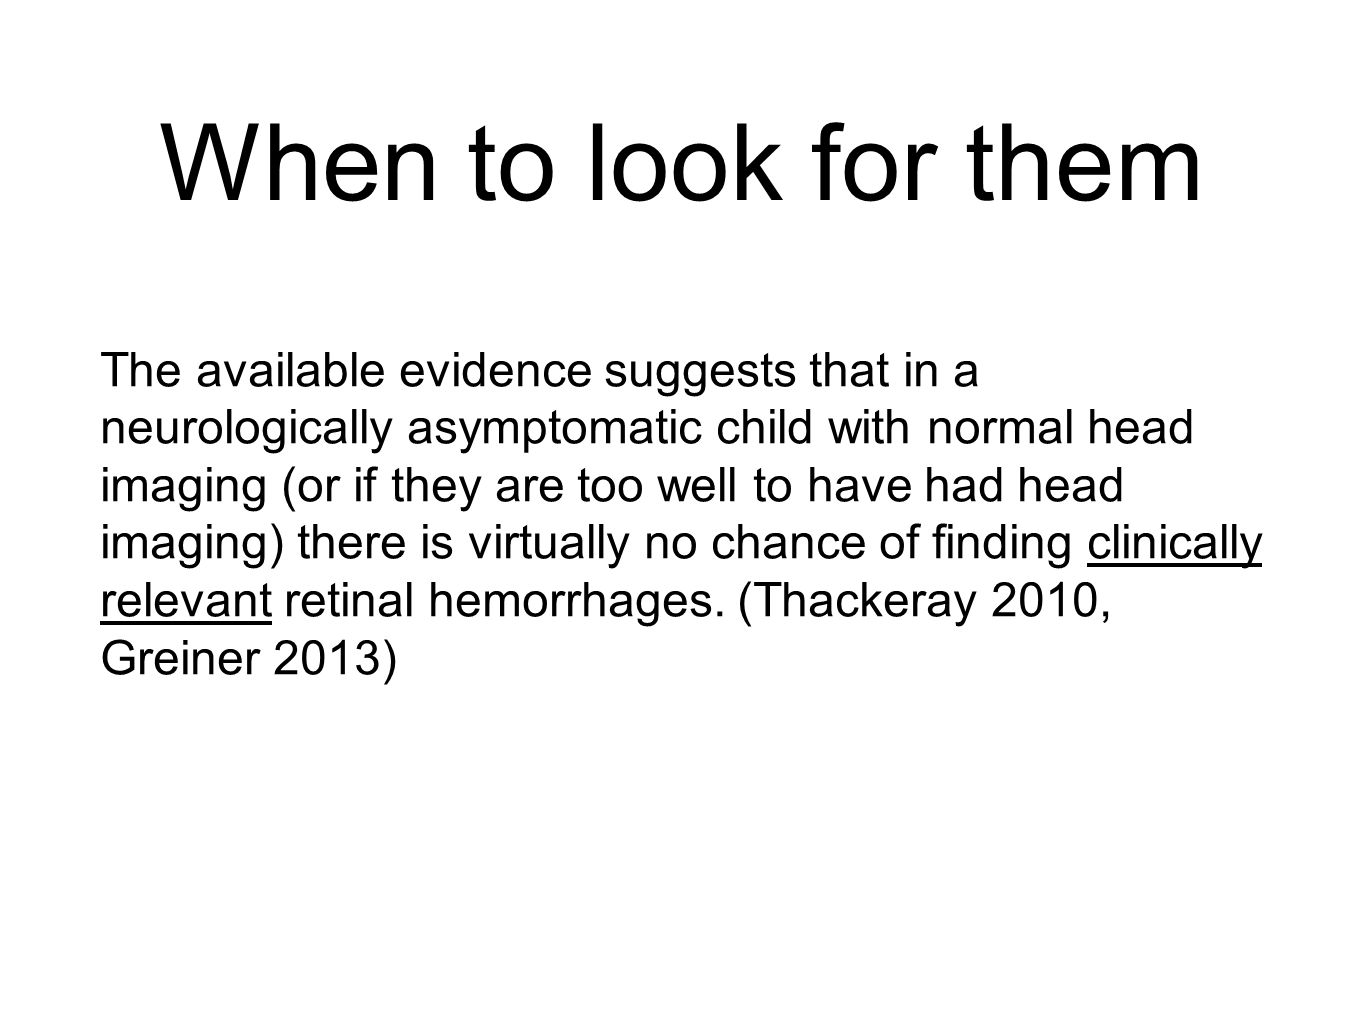 When to look for them The available evidence suggests that in a neurologically asymptomatic child with normal head imaging (or if they are too well to